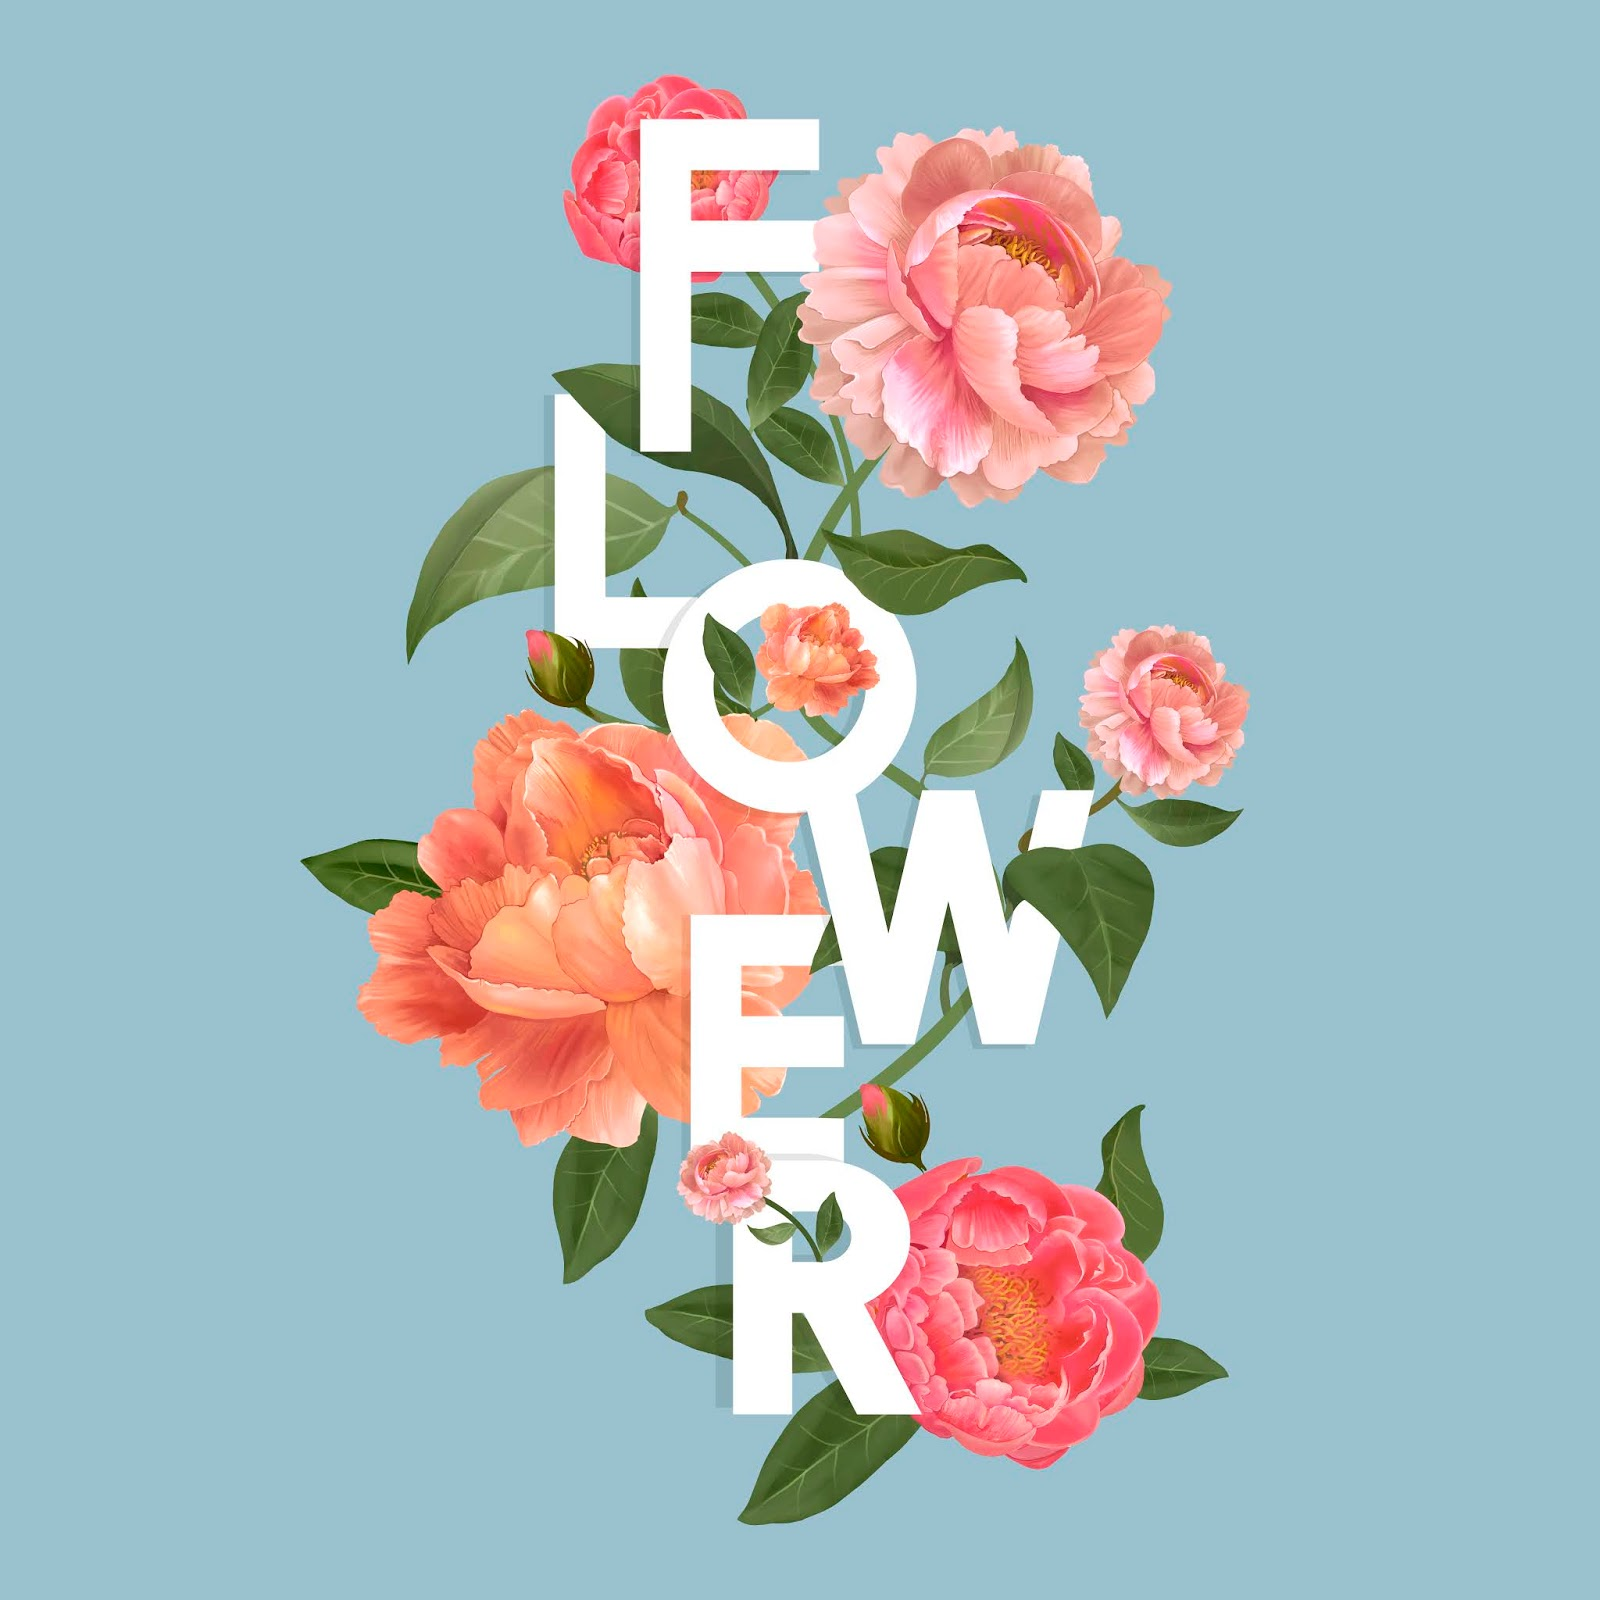 Beautiful Blooming Flowers Design Vector Free Download Vector CDR, AI, EPS and PNG Formats